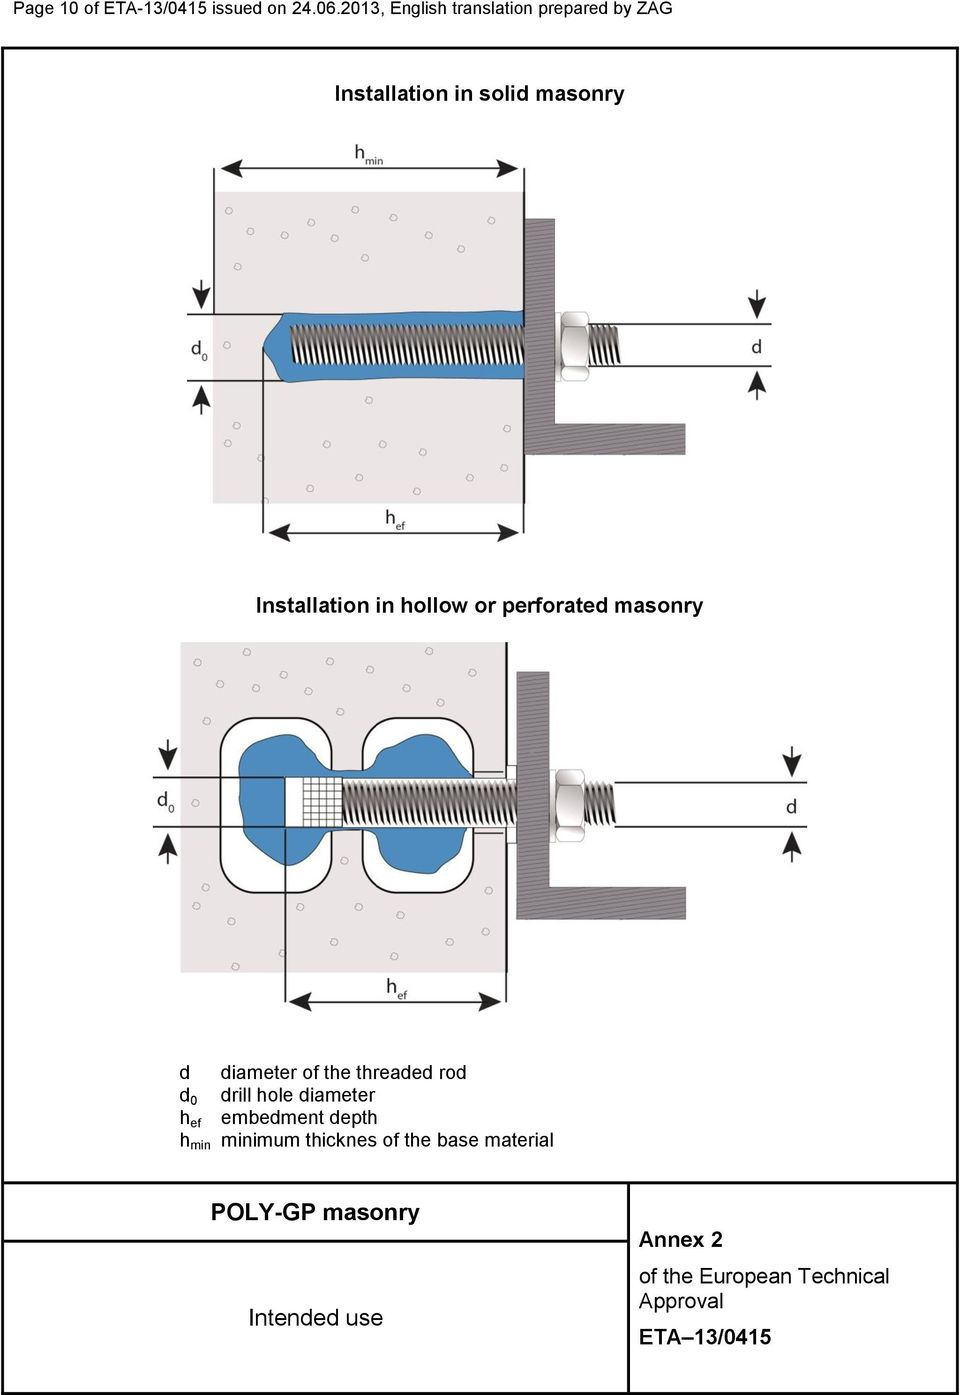 Installation in hollow or perforated masonry d diameter of the threaded